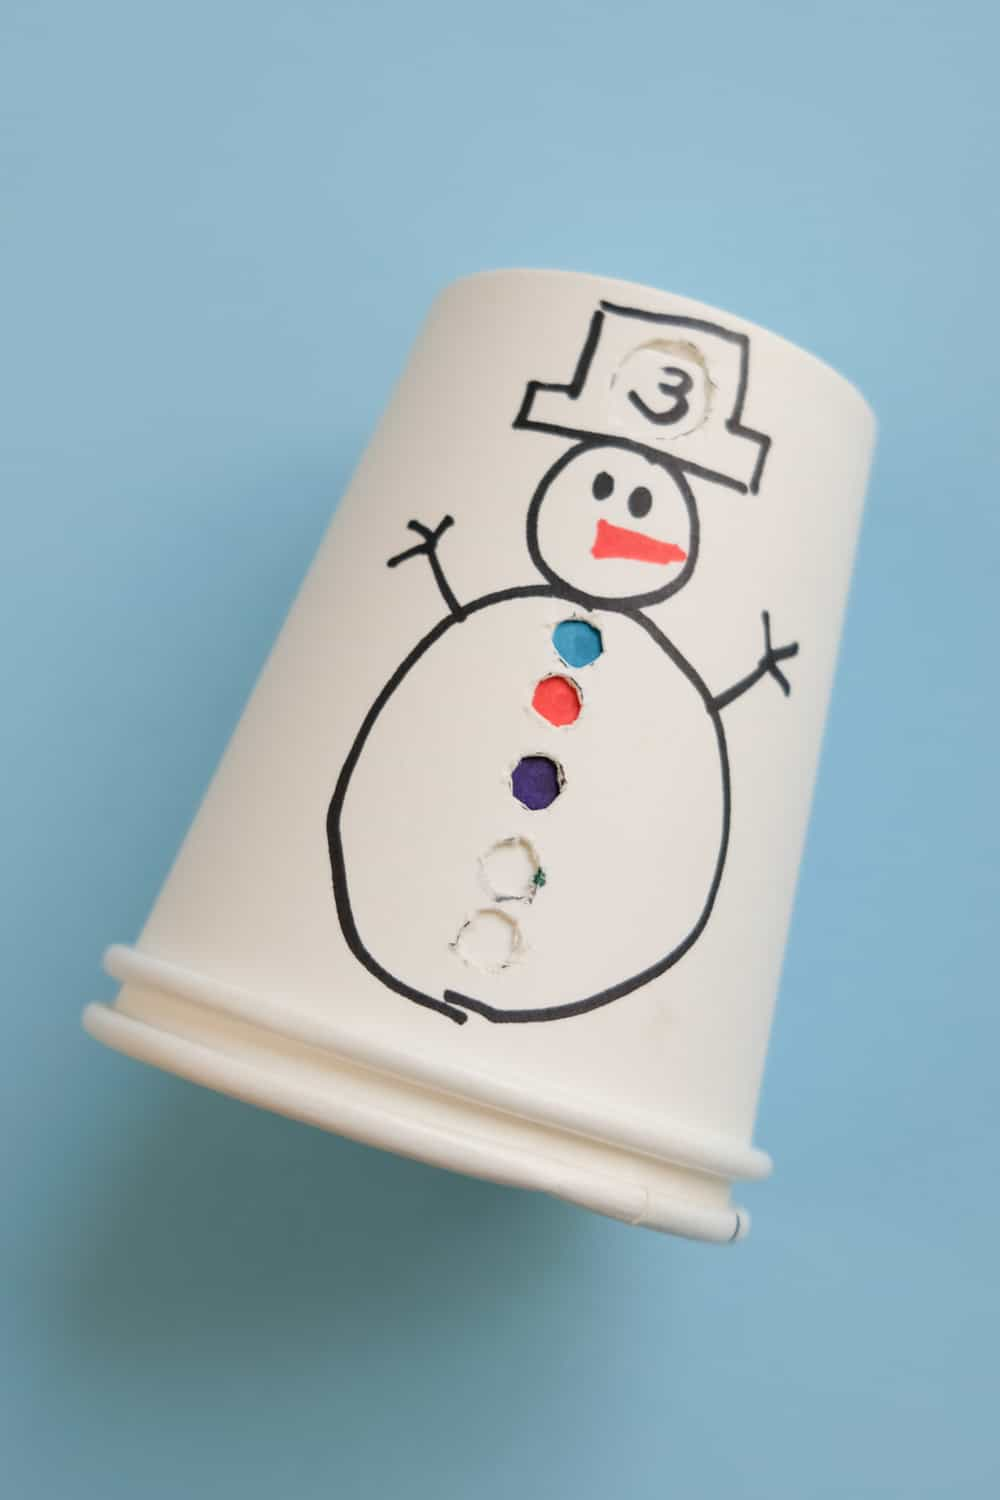 Toddlers are going to have so much fun learning how to count from 1 to 5 with this DIY paper cup snowman!